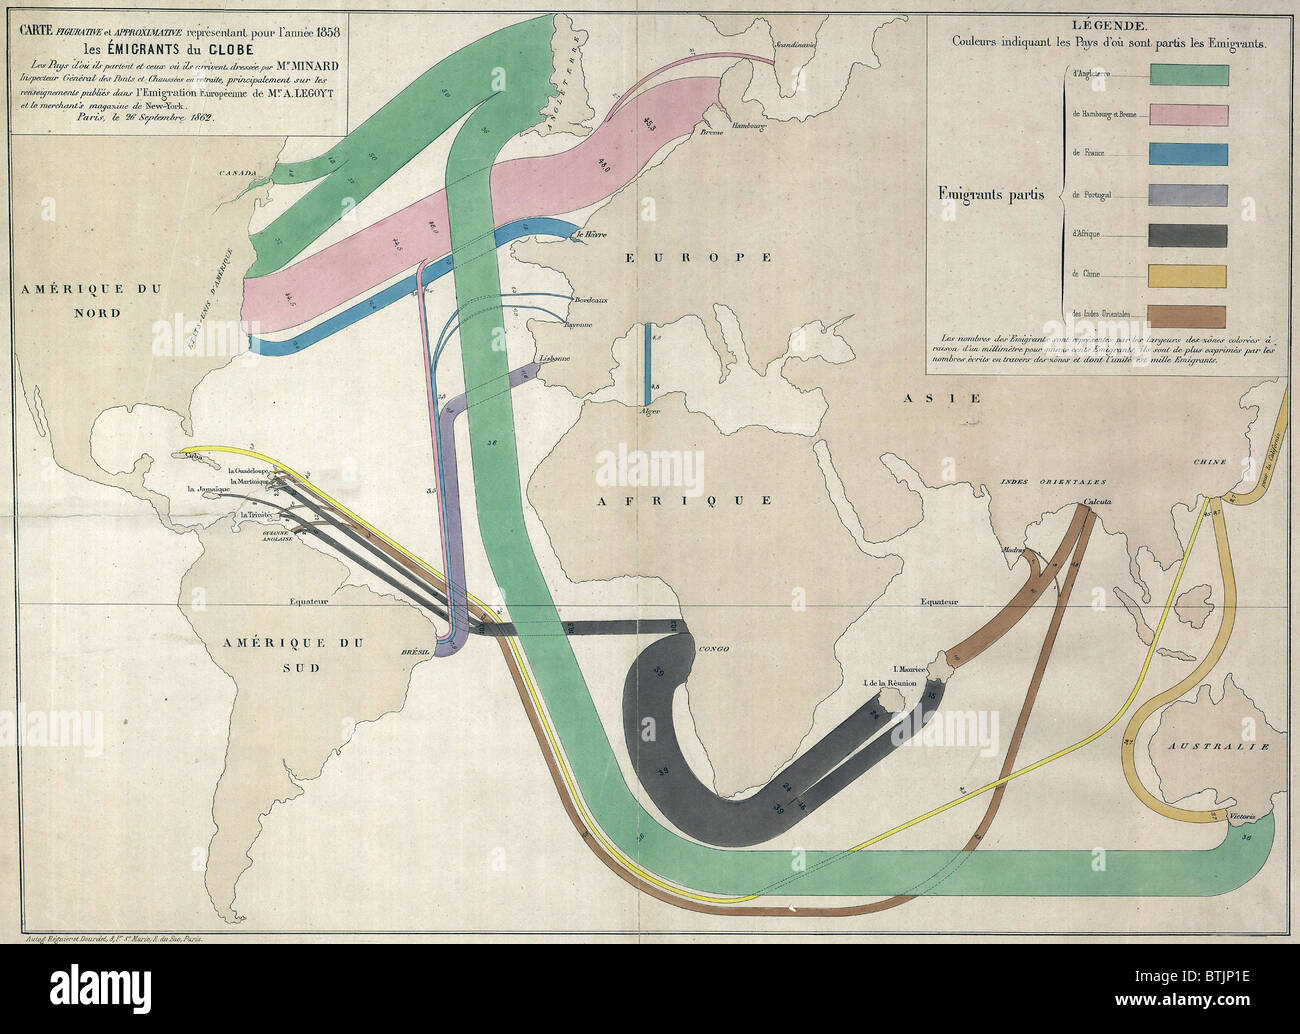 1858 French map showing immigration routes from Europe The